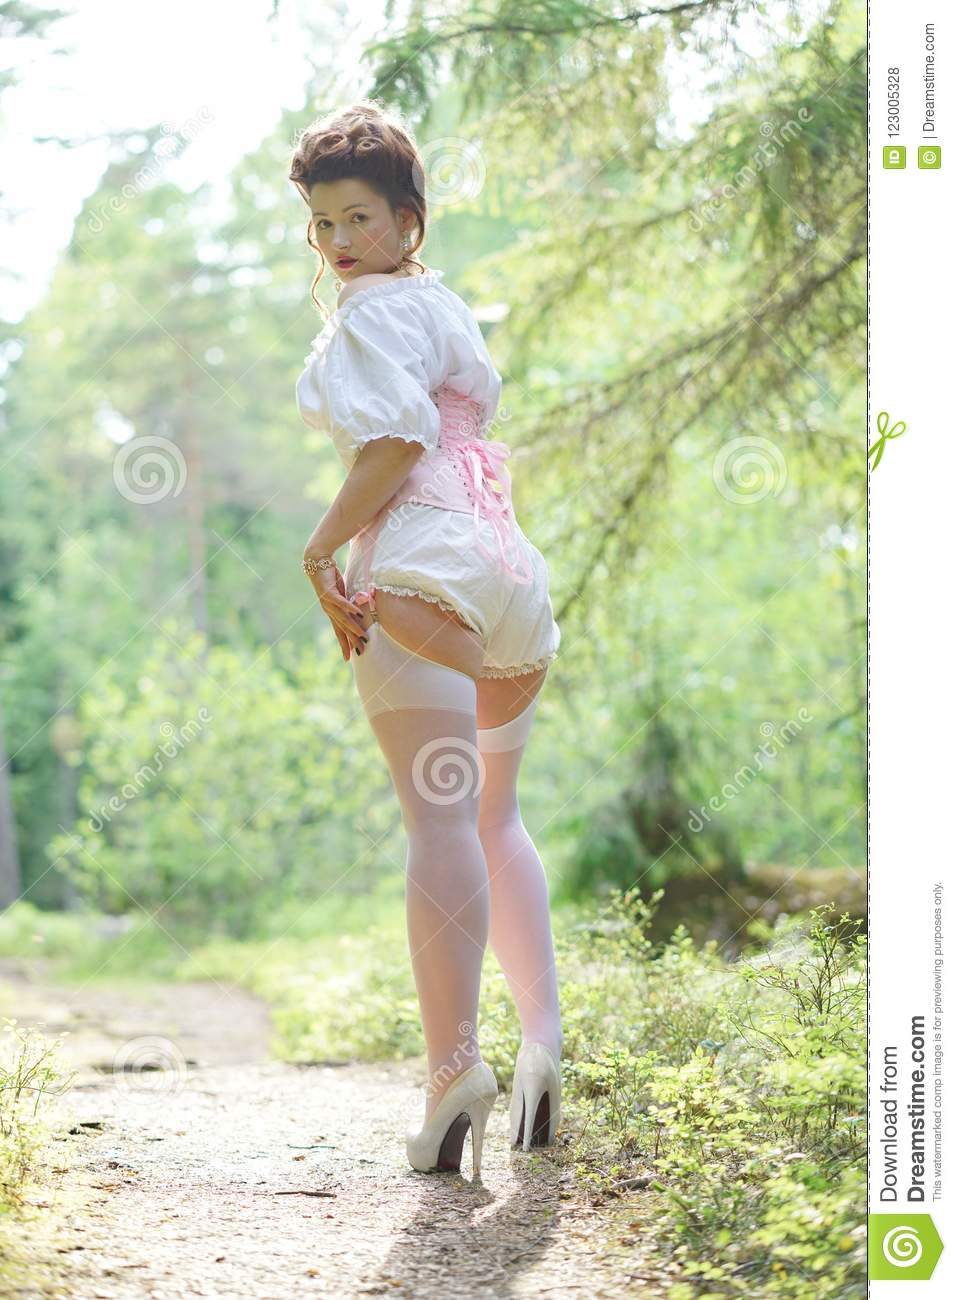 b3821f4d91 Beautiful young chubby girl posing in medieval retro corset and white  vintage lingerie in the forest